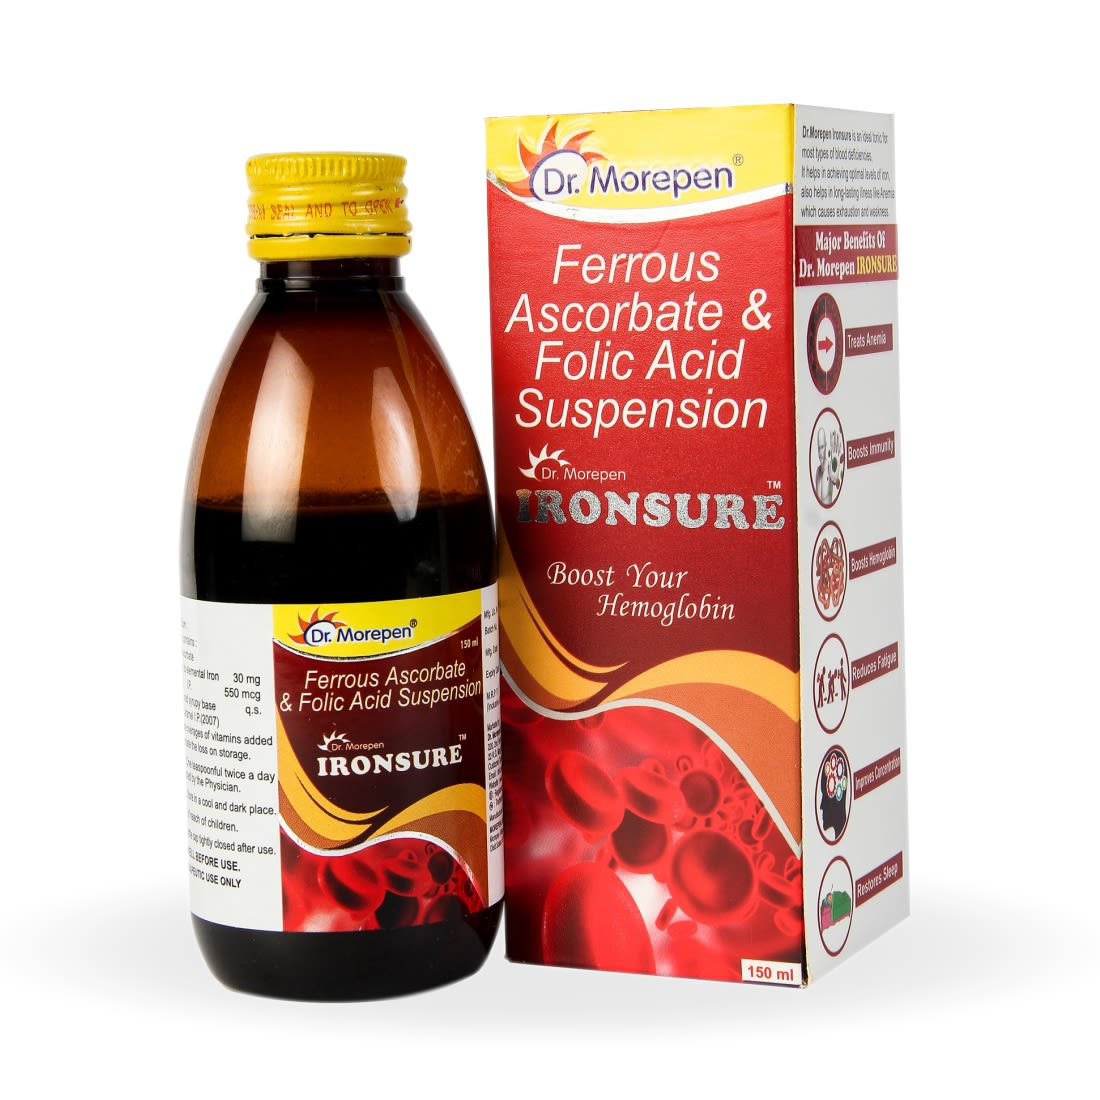 Dr. Morepen Ironsure Hemoglobin Booster Syrup - 150ml